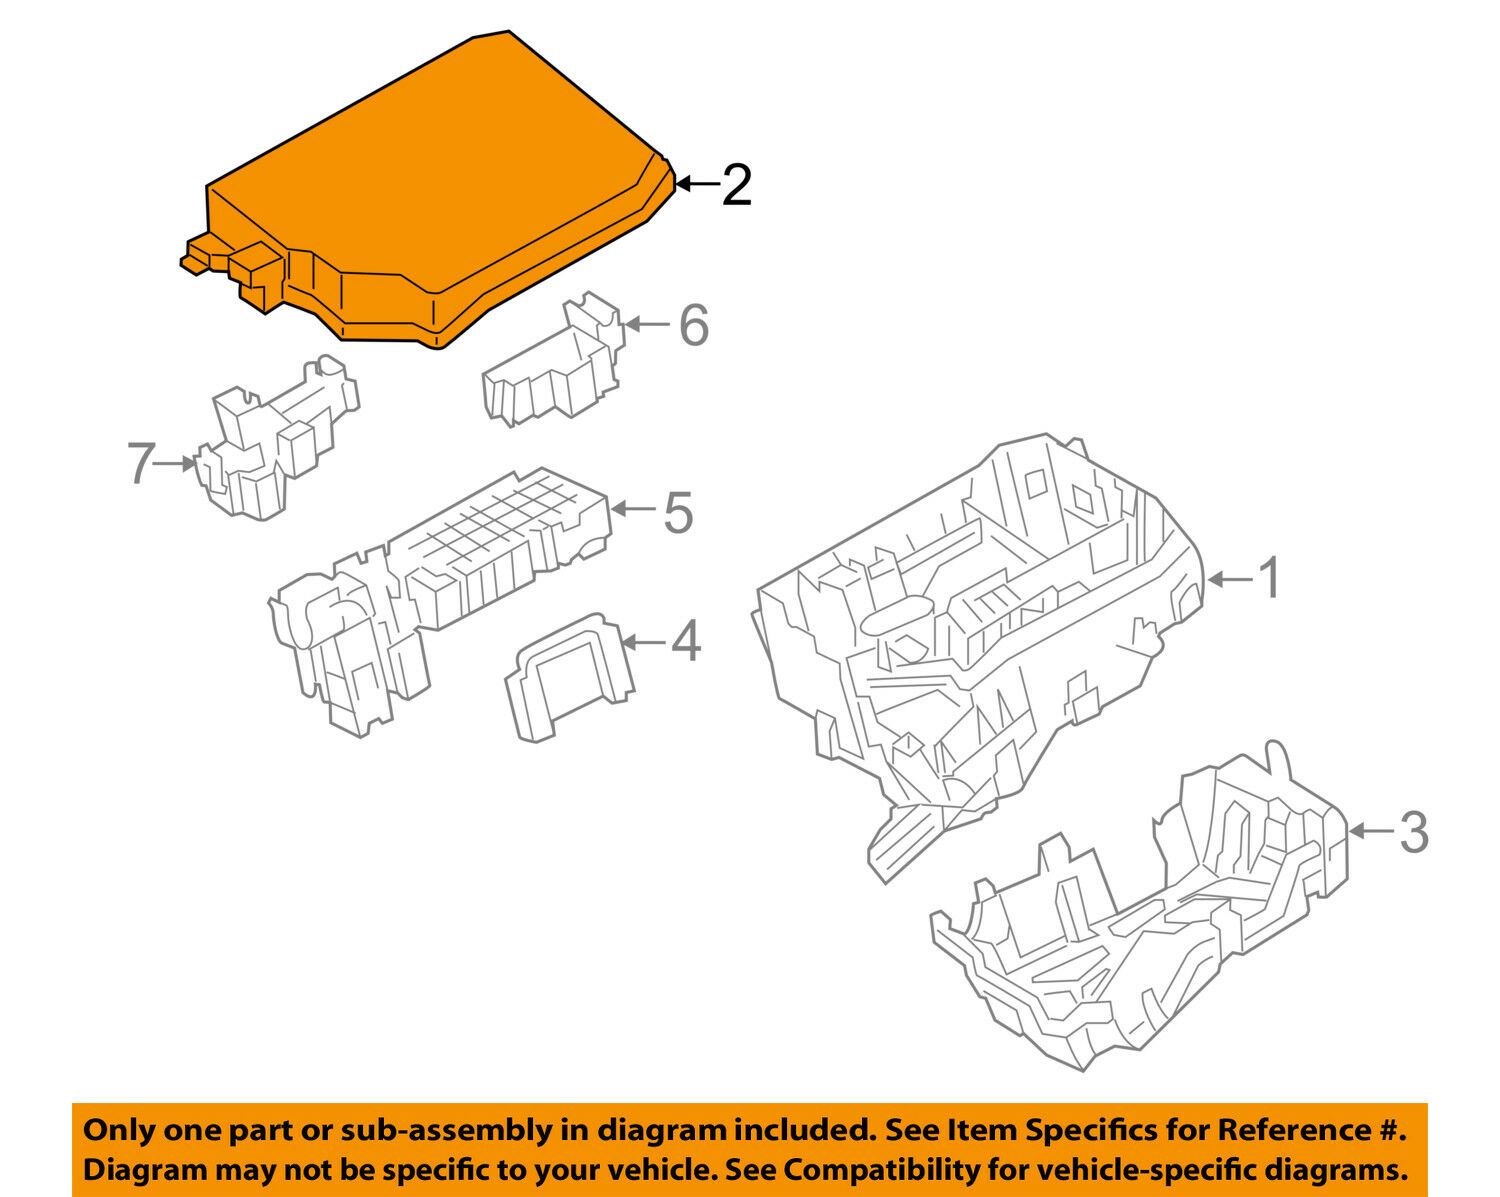 Toyota Oem 14 16 Corolla Electrical Fuse Relay Box Upper Cover Covers 8266202660 1 Of 2only Available See More